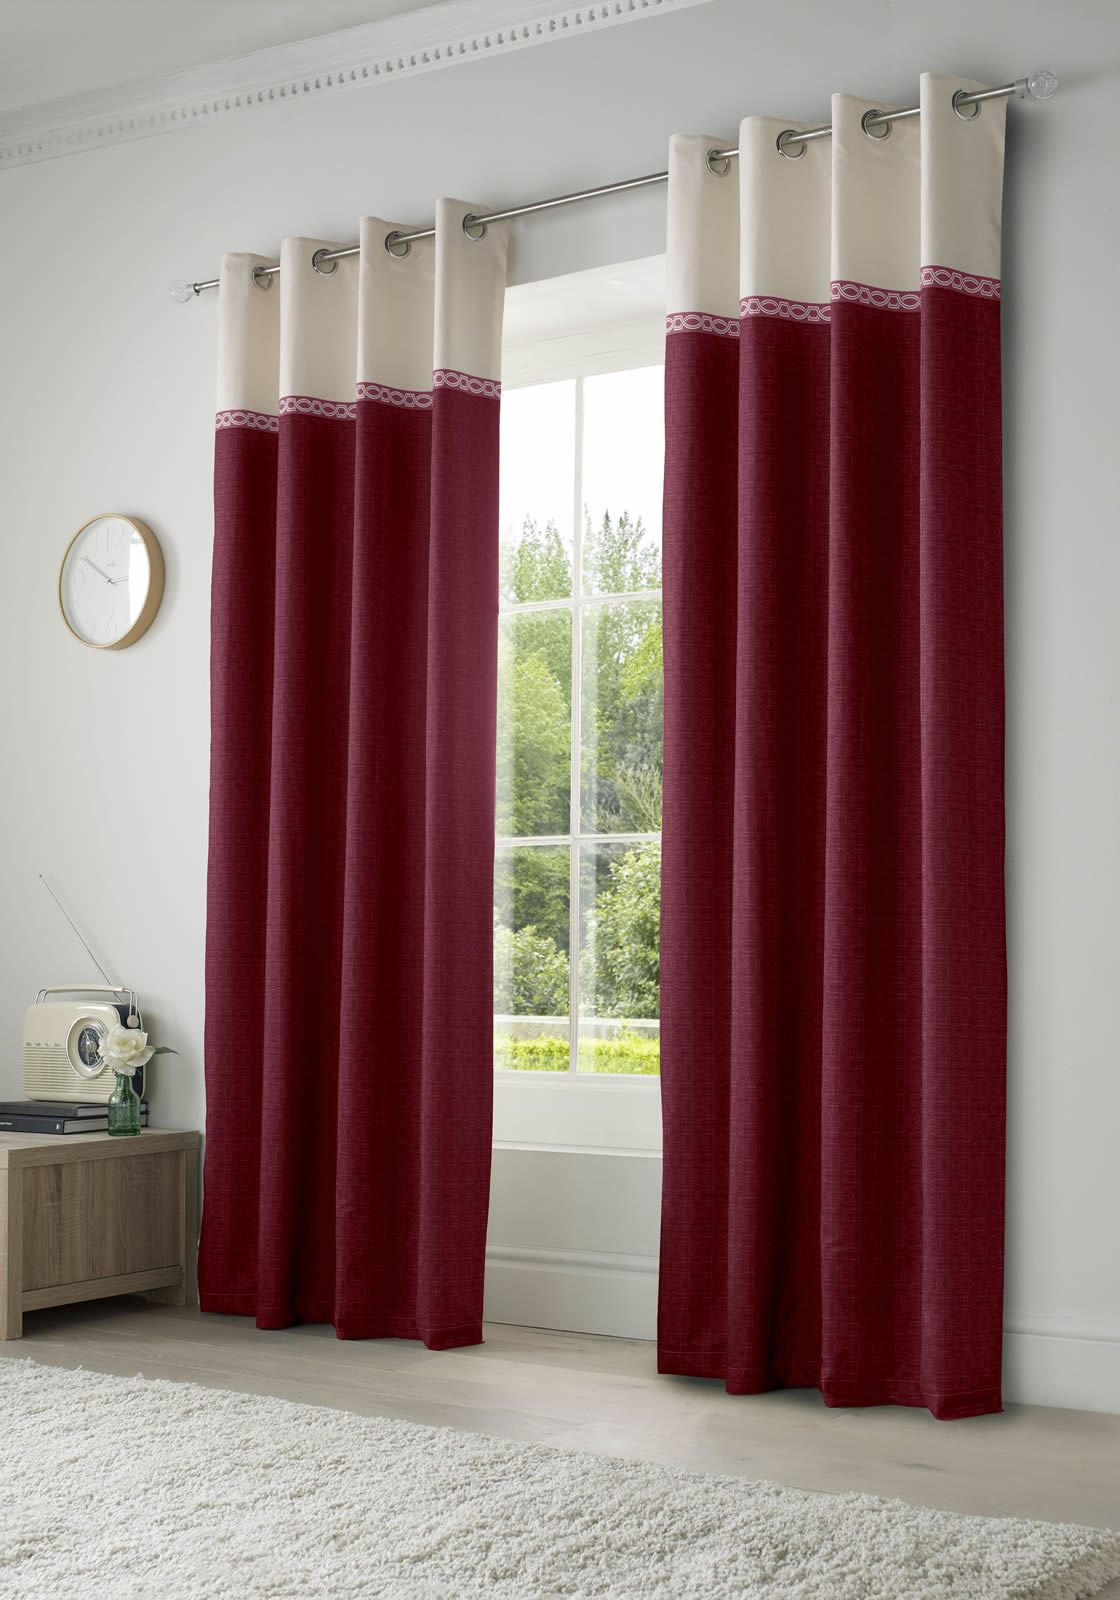 Toronto Lined Eyelet Curtains Ready Made Ring Top